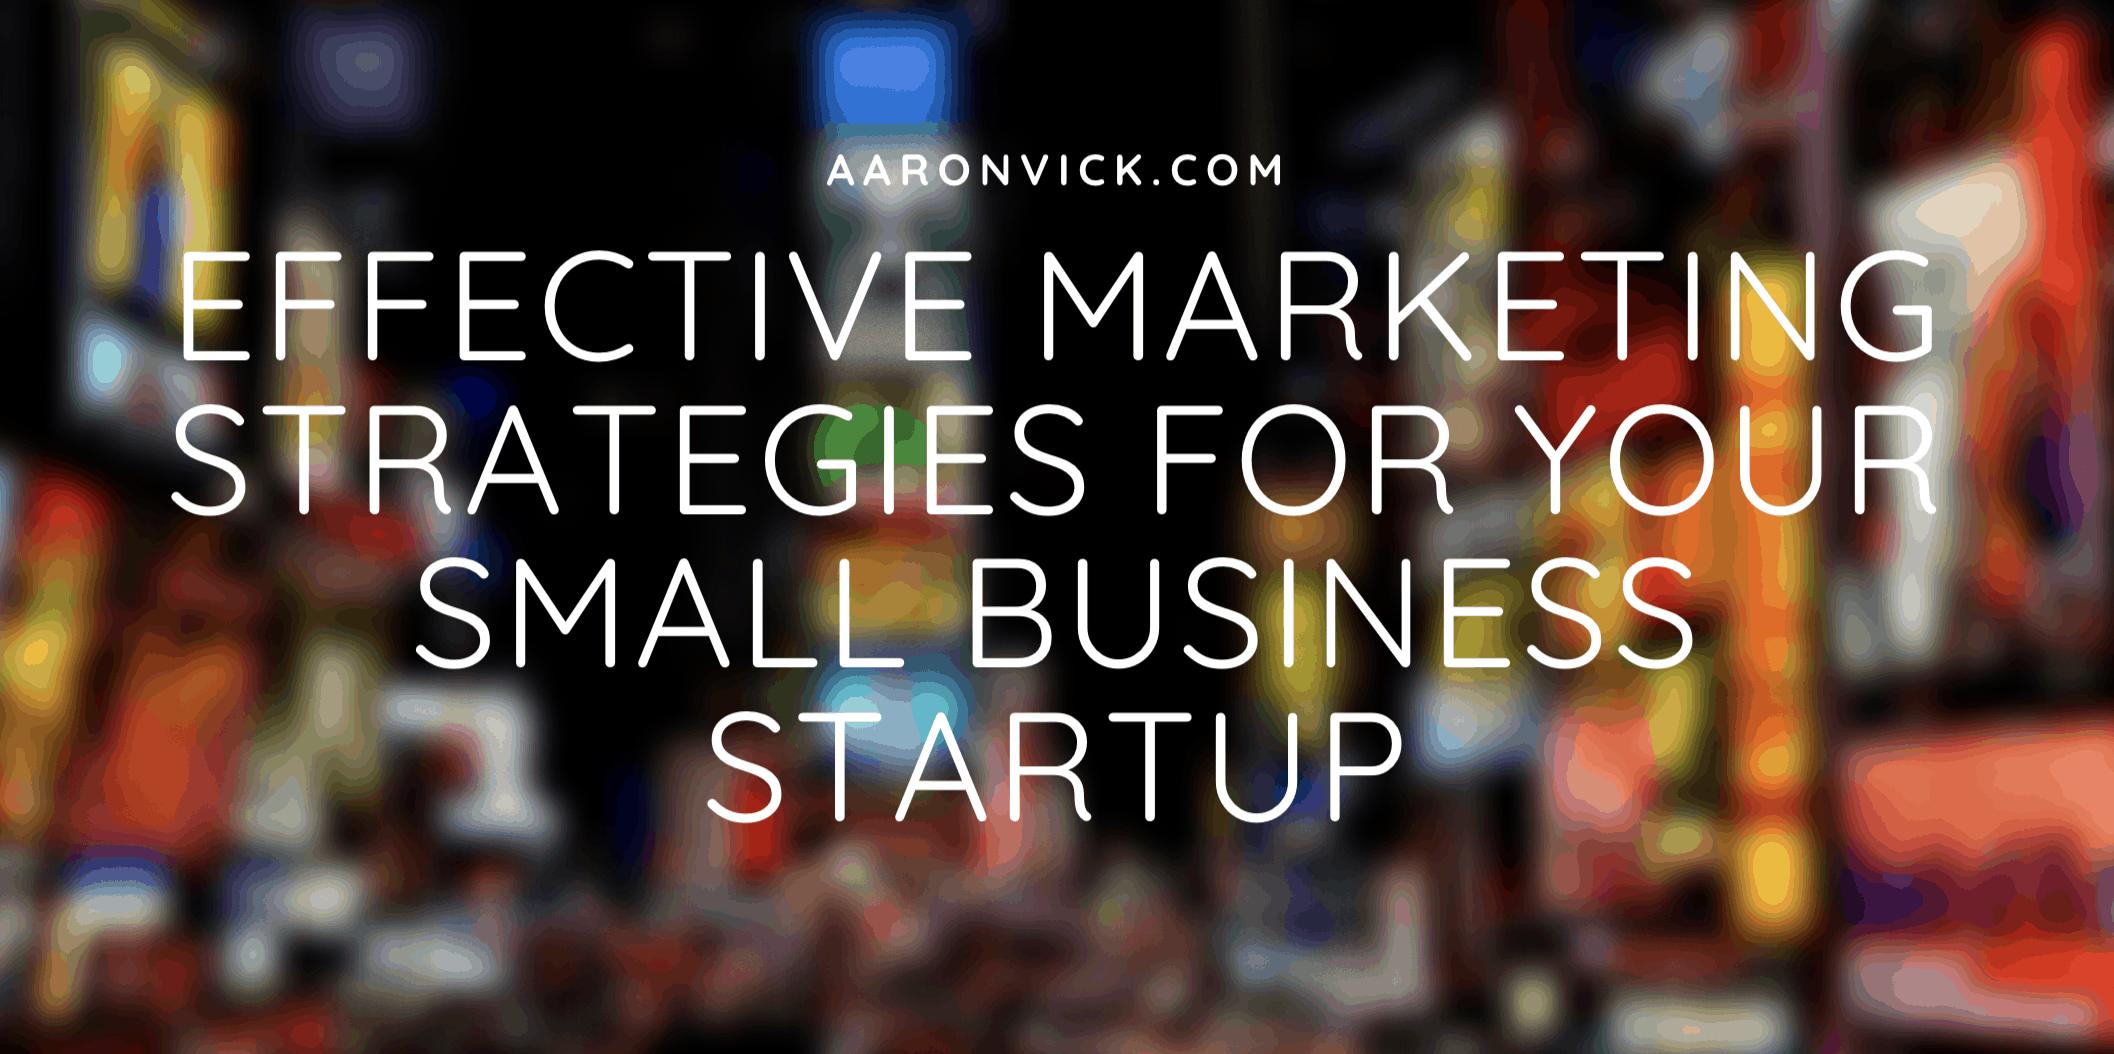 Aaron Vick - Effective Marketing Strategies for Your Small Business Startup